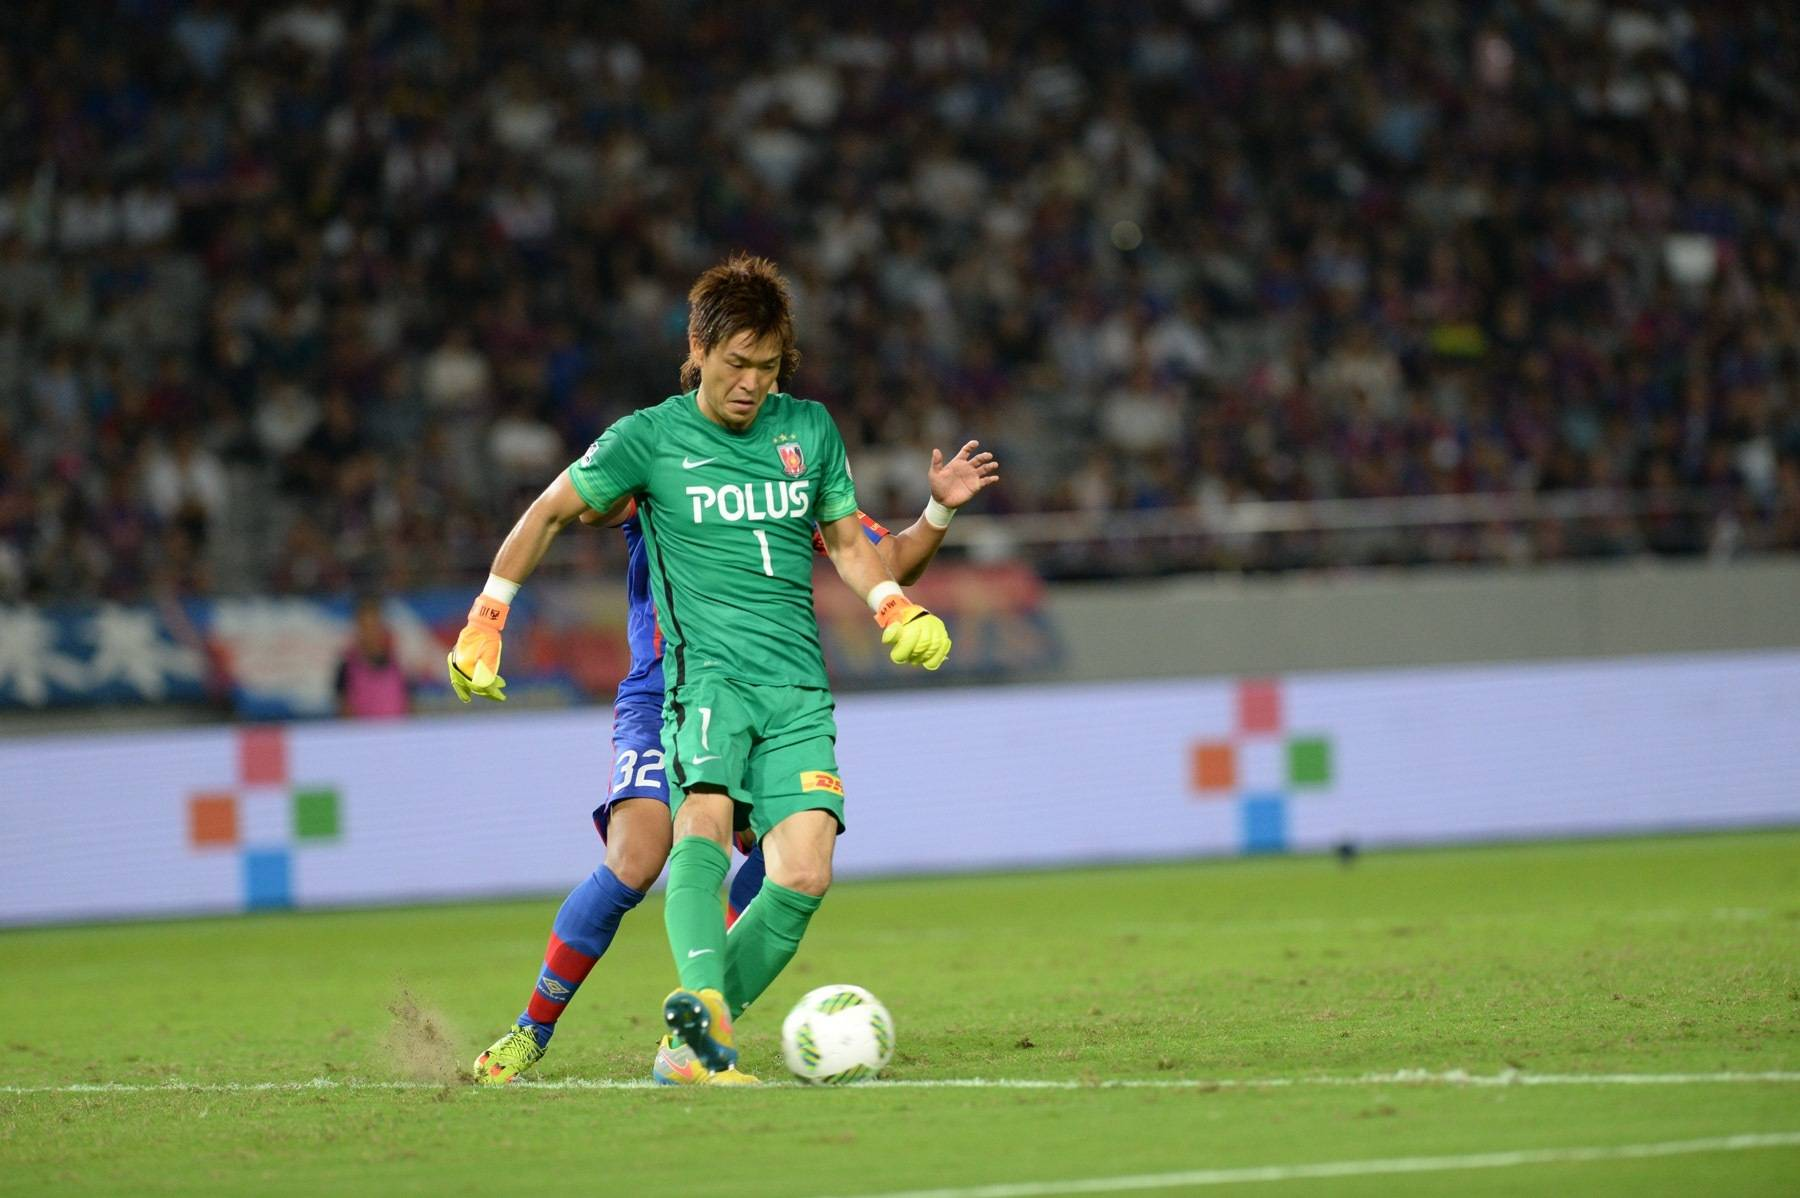 J.League to focus on goalkeepers in special match broadcast